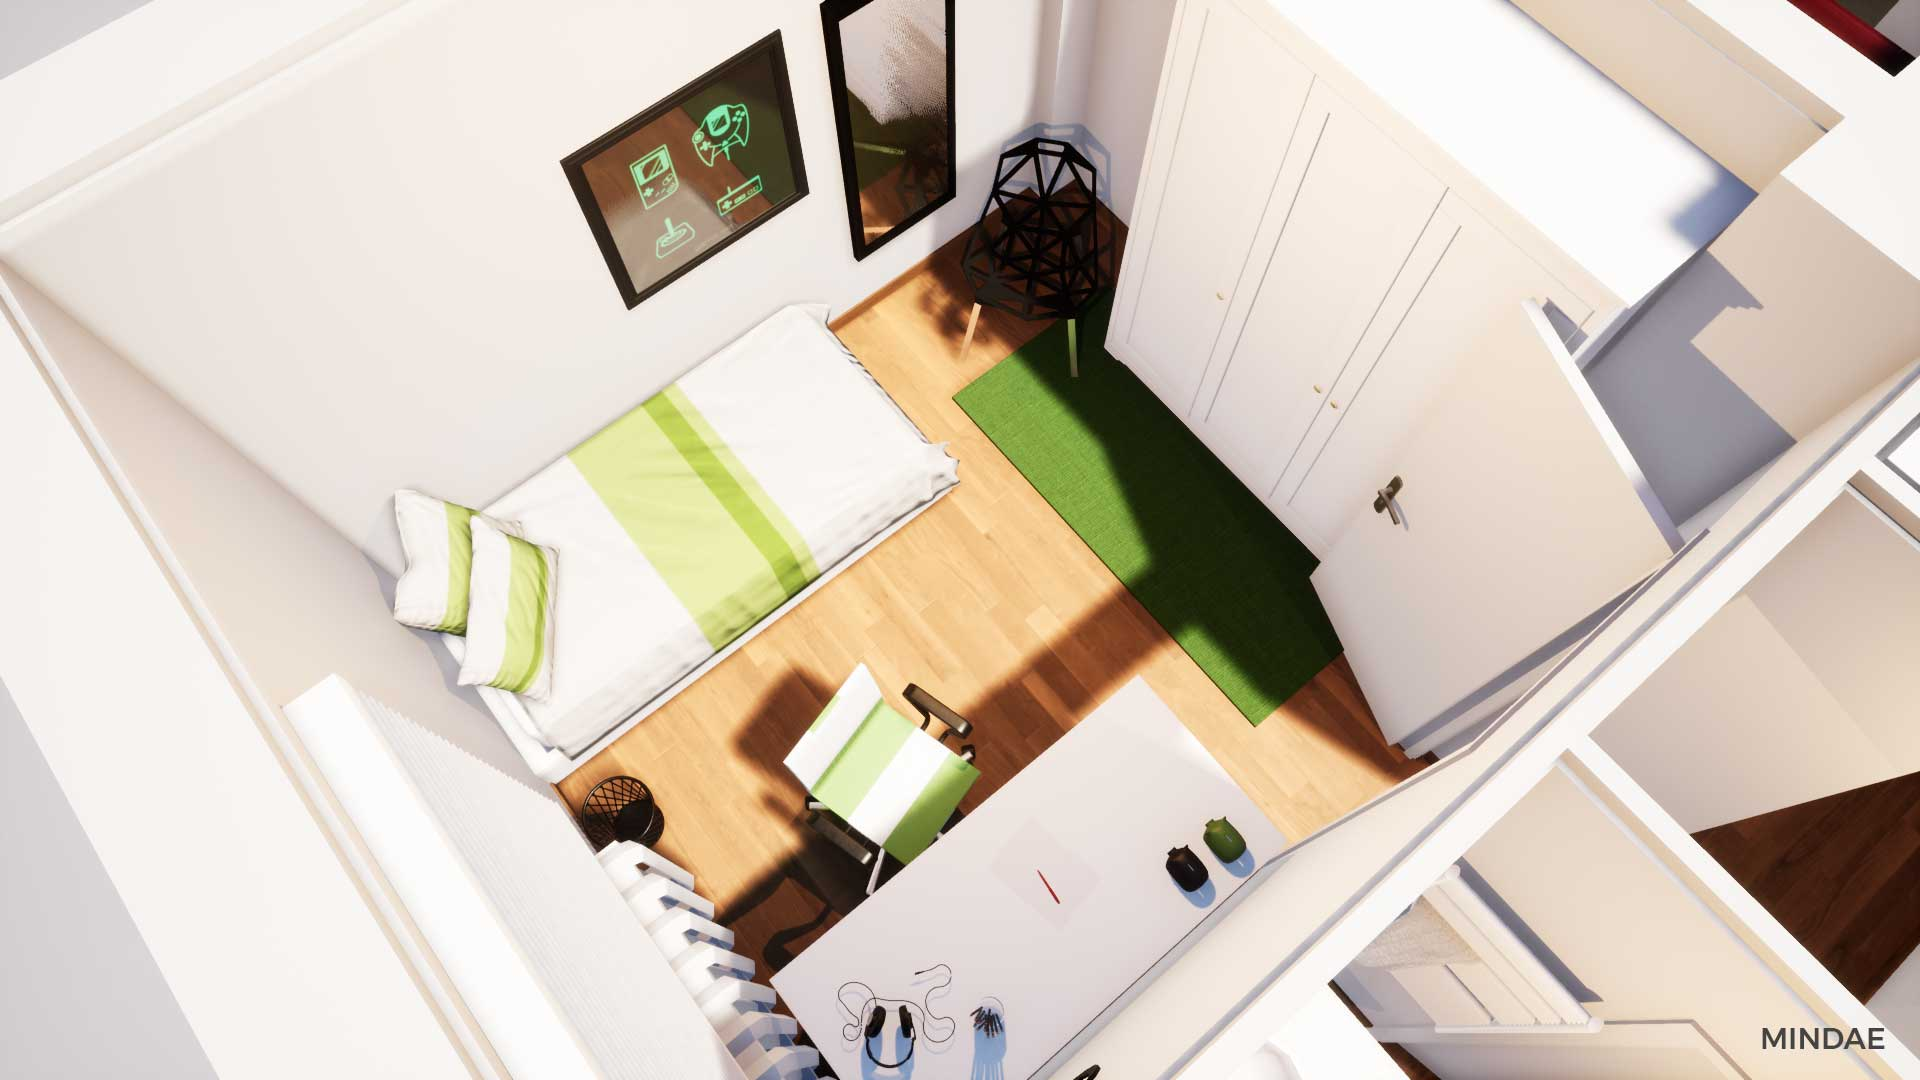 Mindae_3D_appartement_caen_immobilier_homestaging_(5)